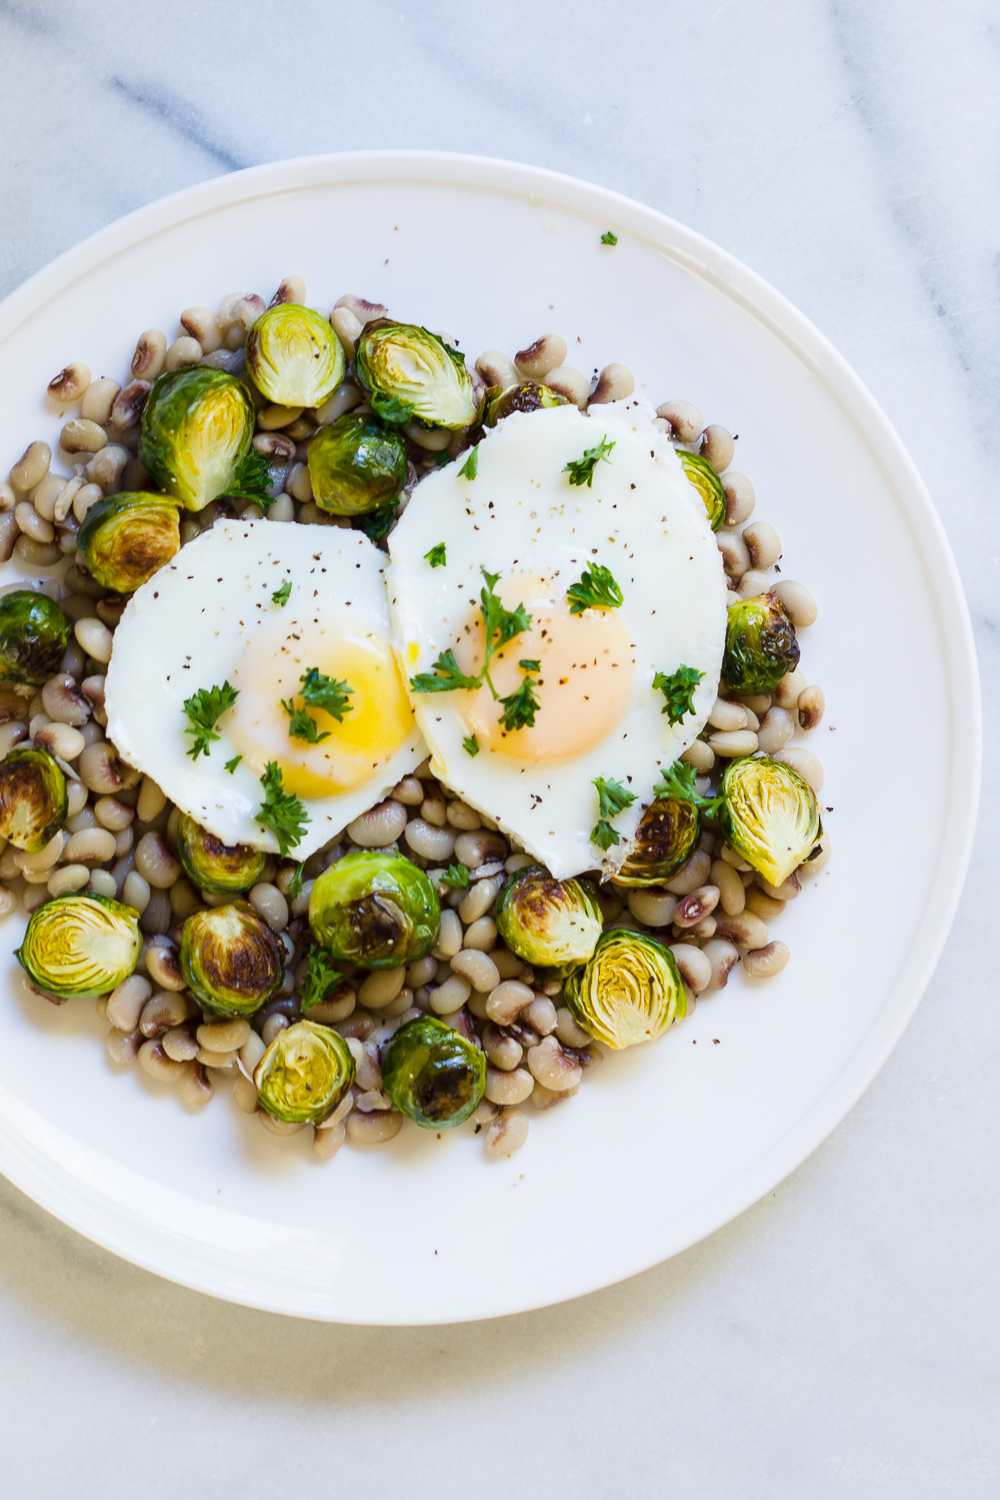 Black Eyed Peas with Brussels Sprouts and Egg